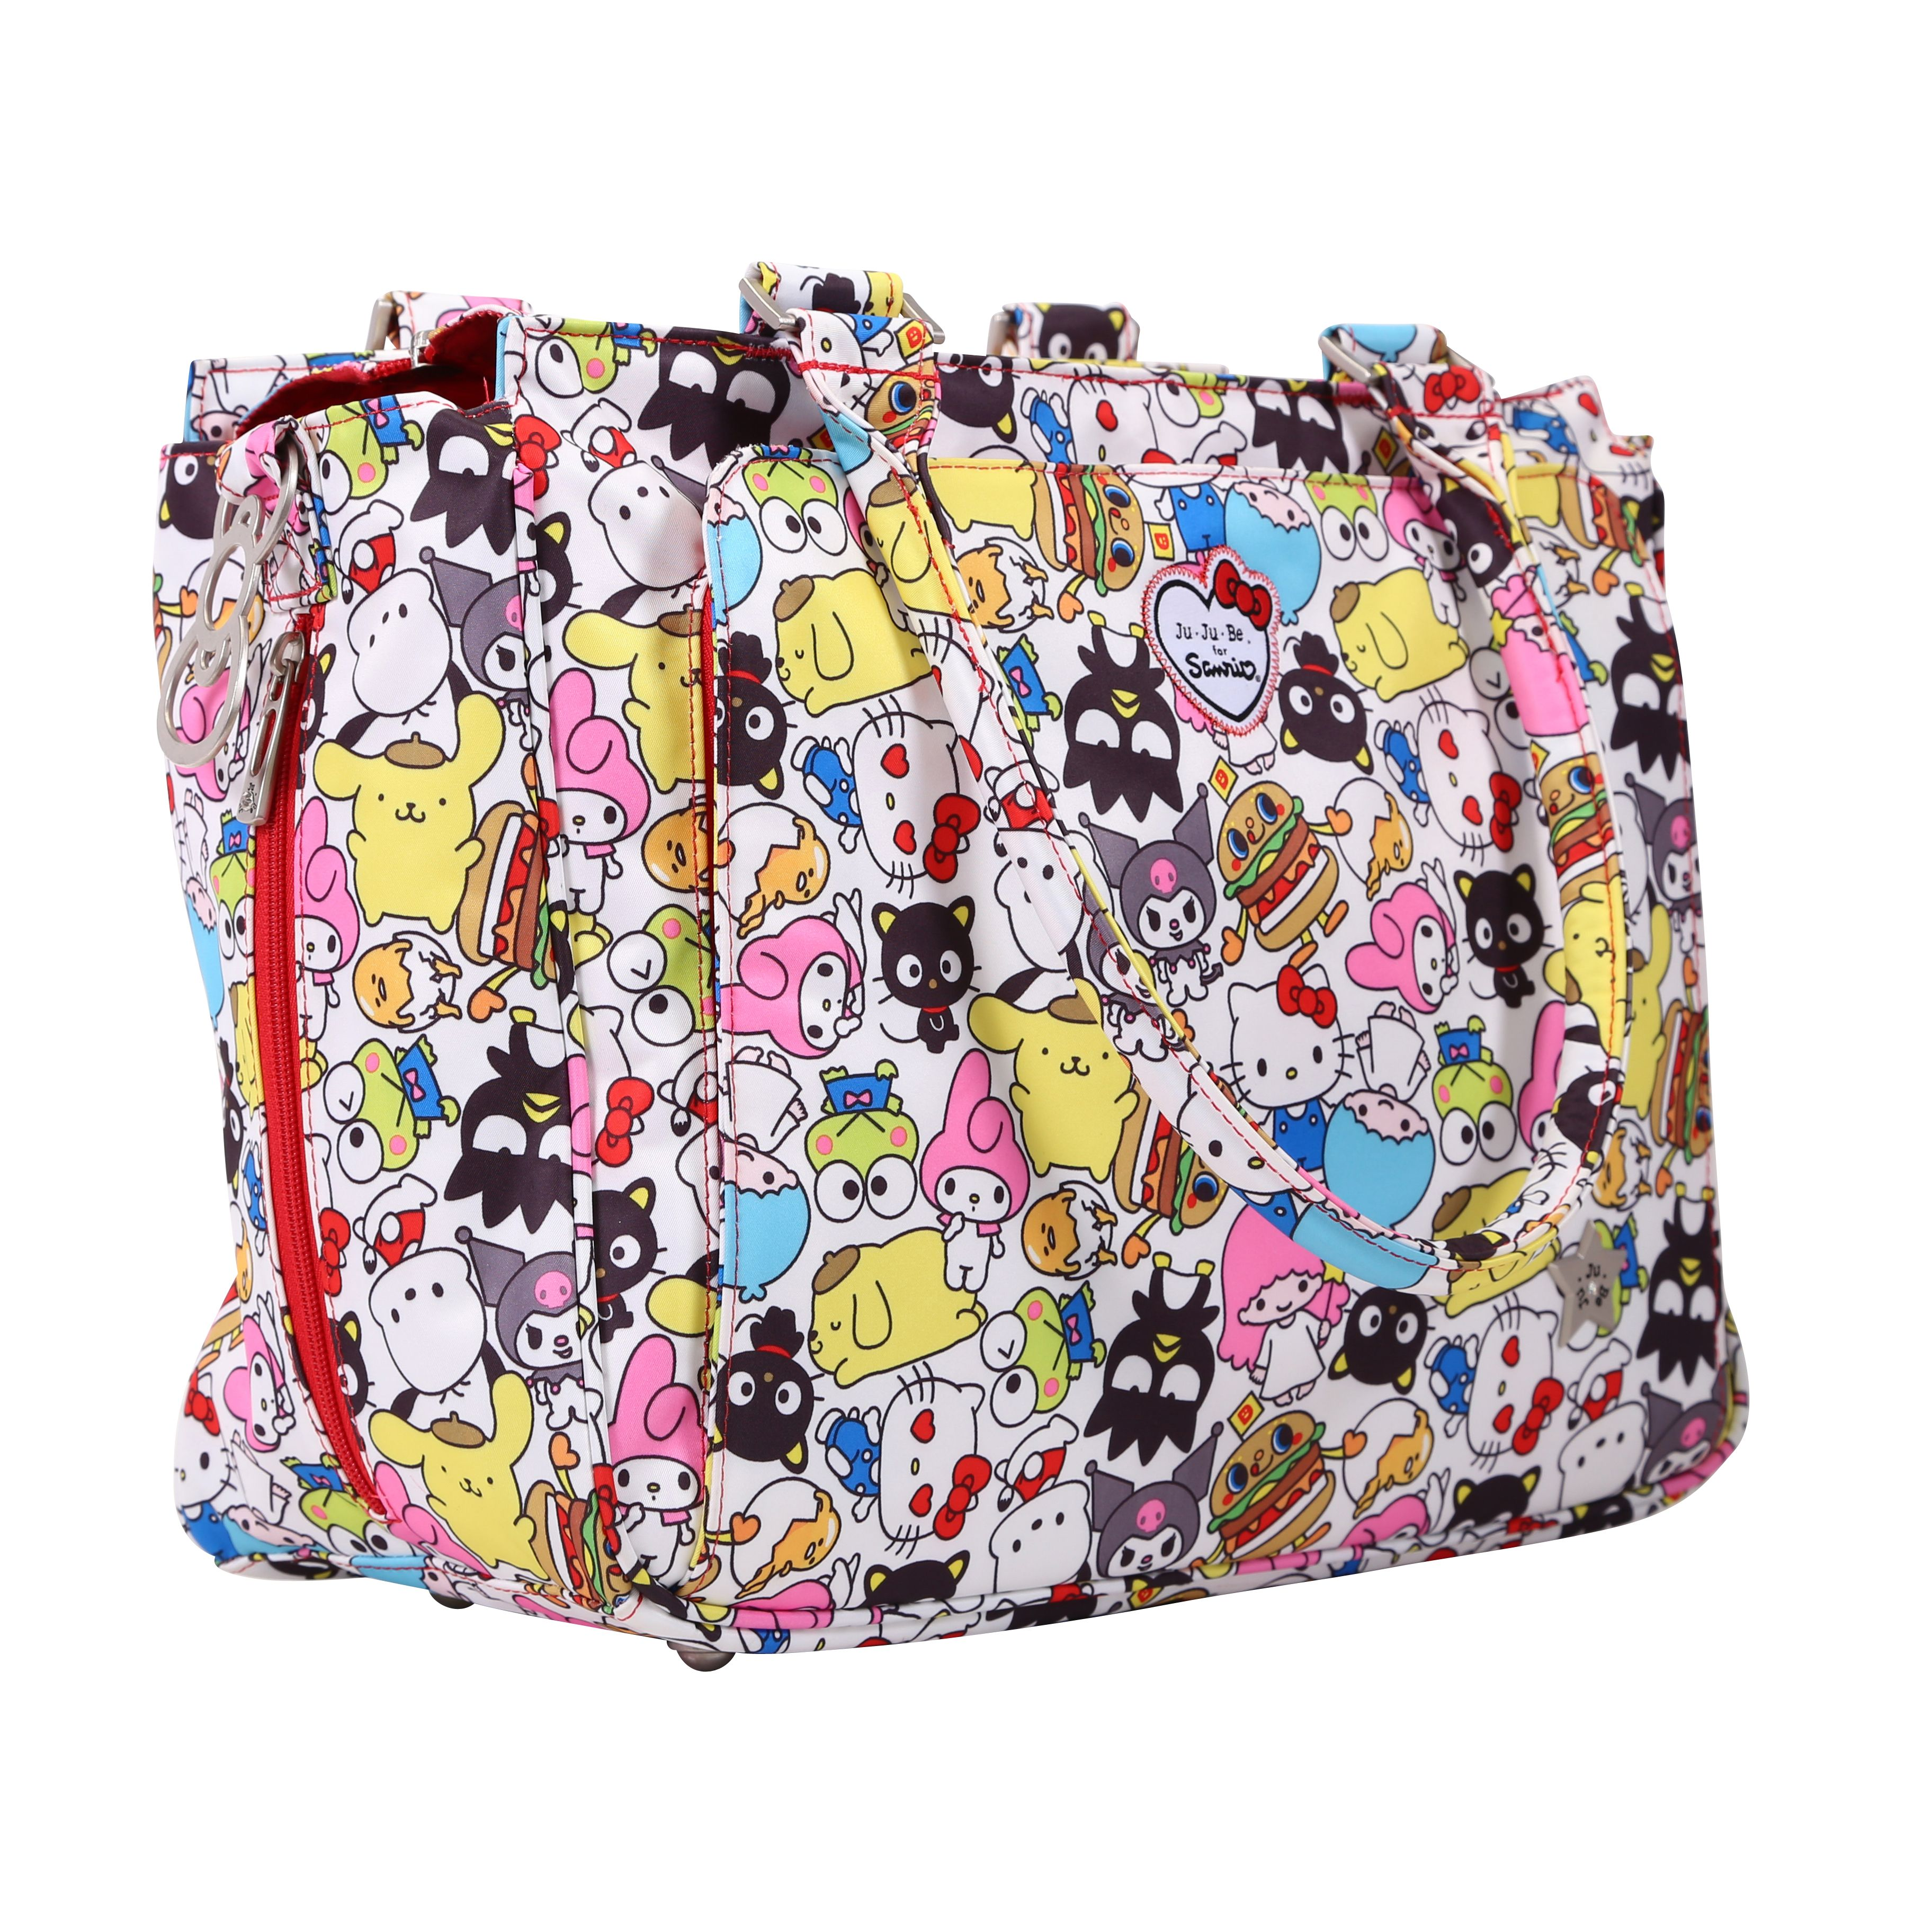 Ju Be Classy In Hello Sanrio 165 For Jujube Coin Purse Friends Changing Bags Smart People